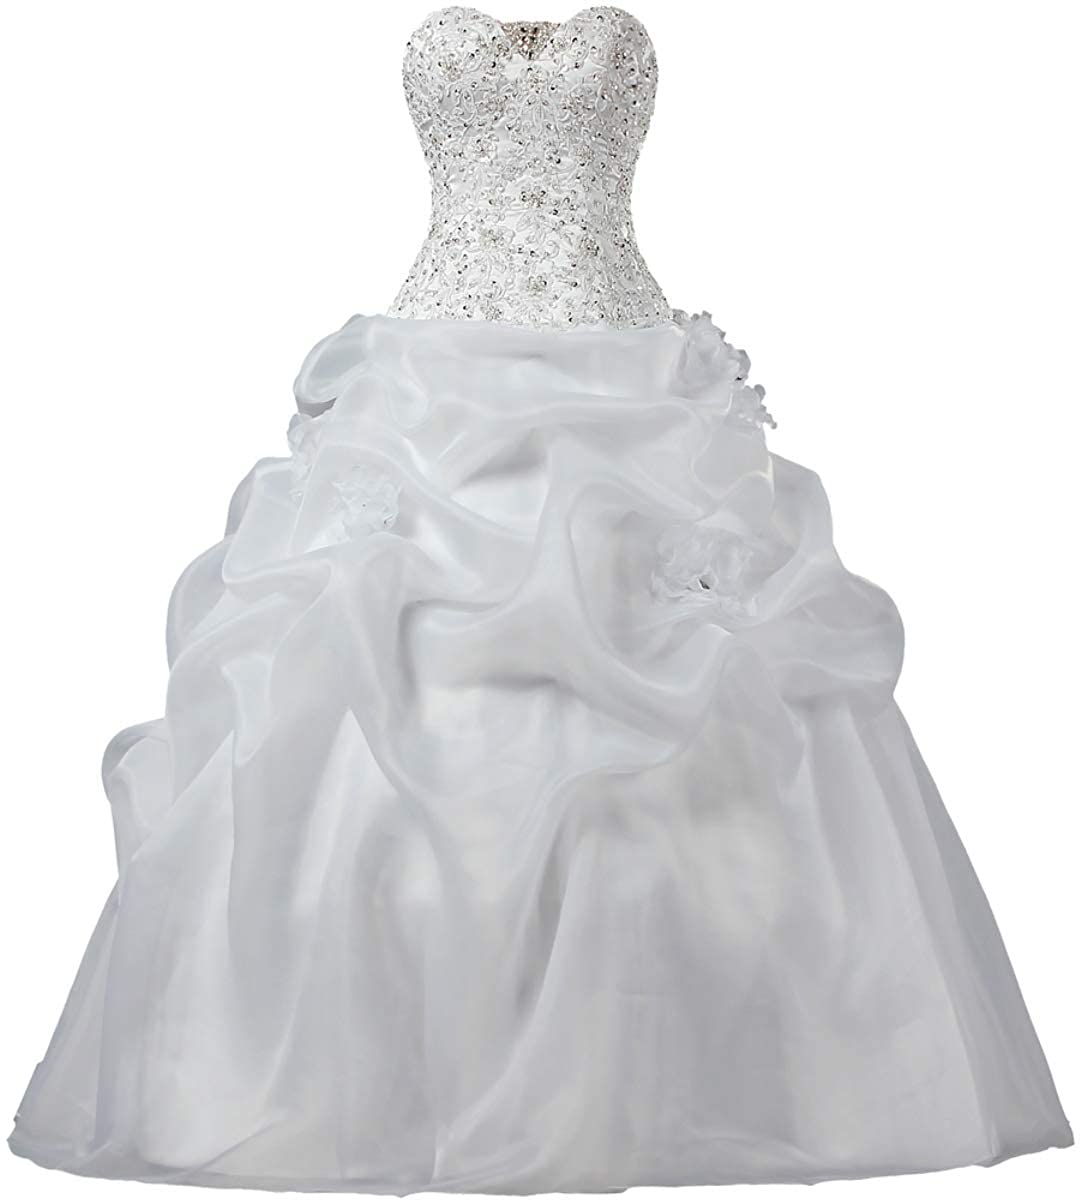 White ANTS Women's Strapless Organza Lace Ball Gown Wedding Dress for Bride